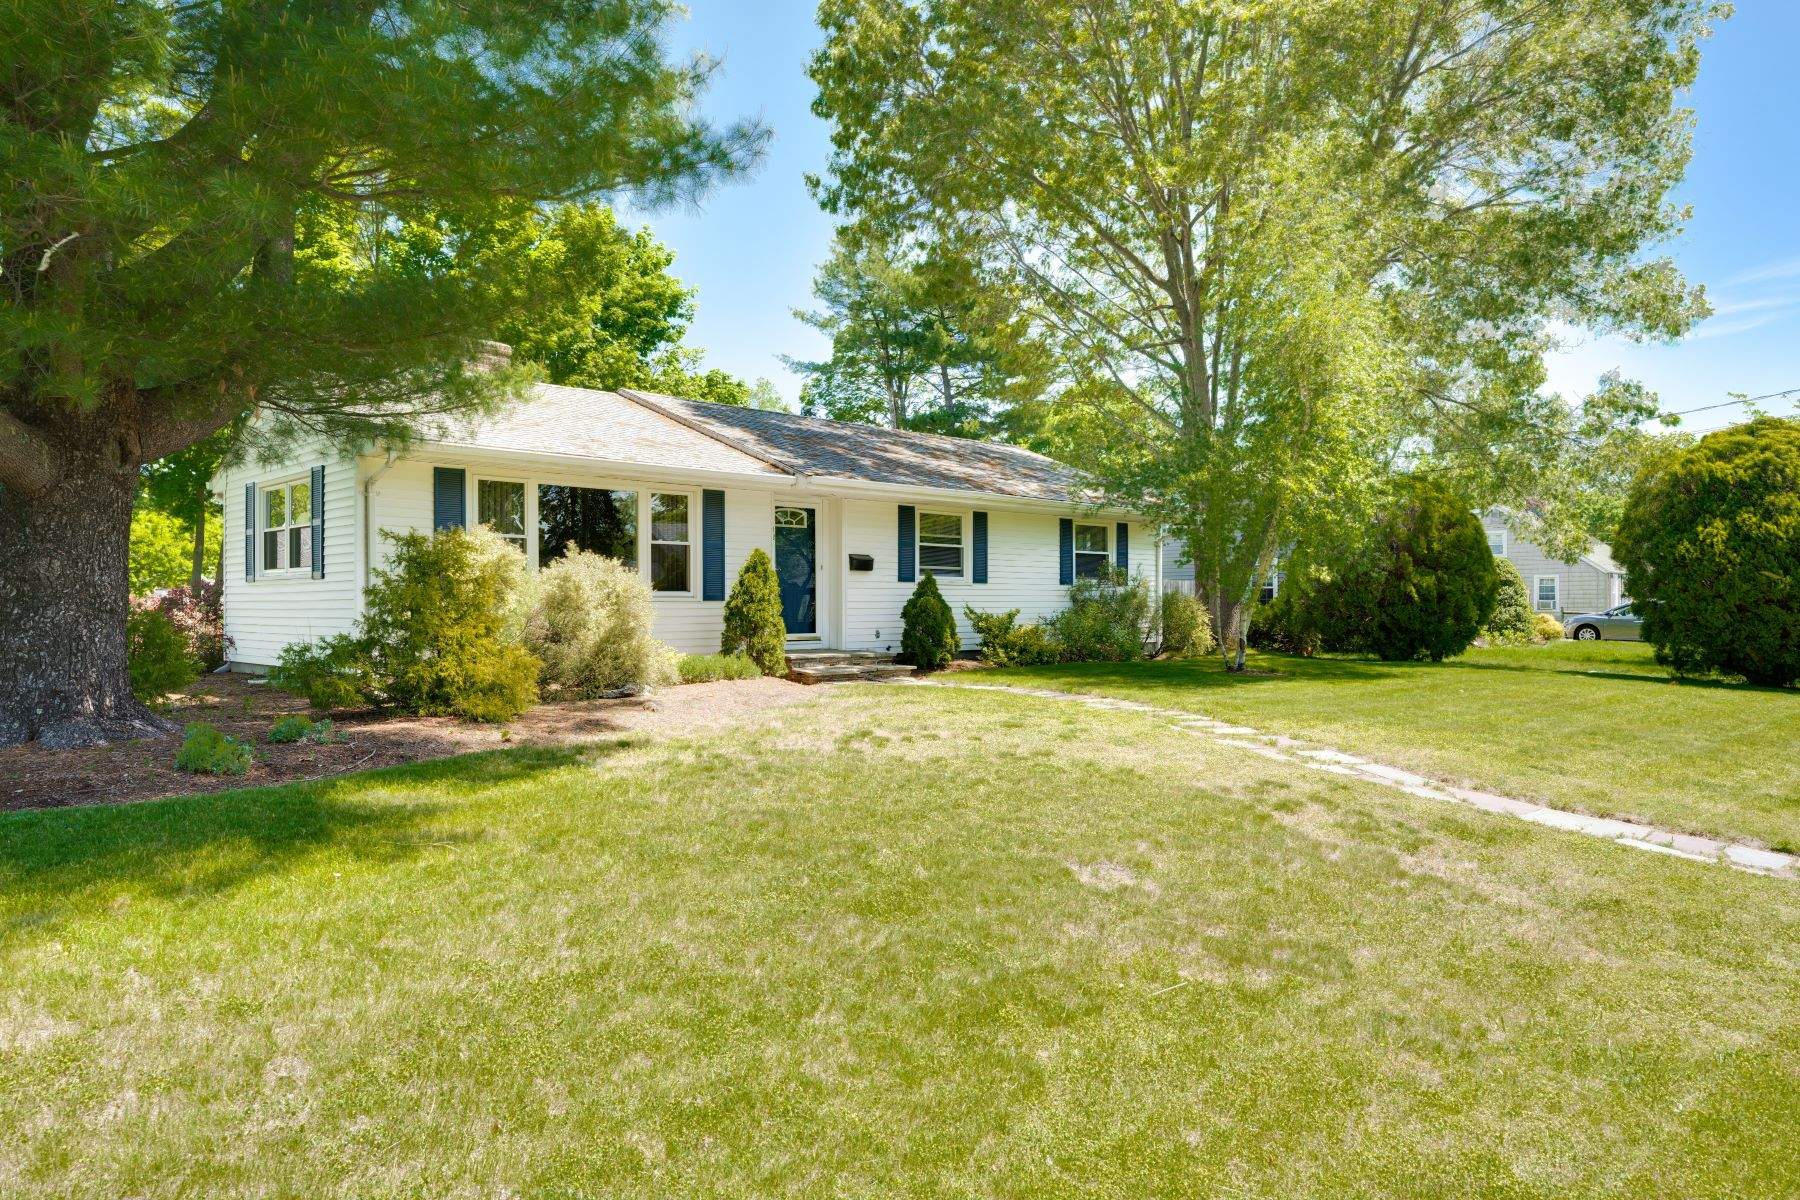 Single Family Homes for Sale at 12 Prudence Court, Warwick, RI 12 Prudence Court Warwick, Rhode Island 02888 United States